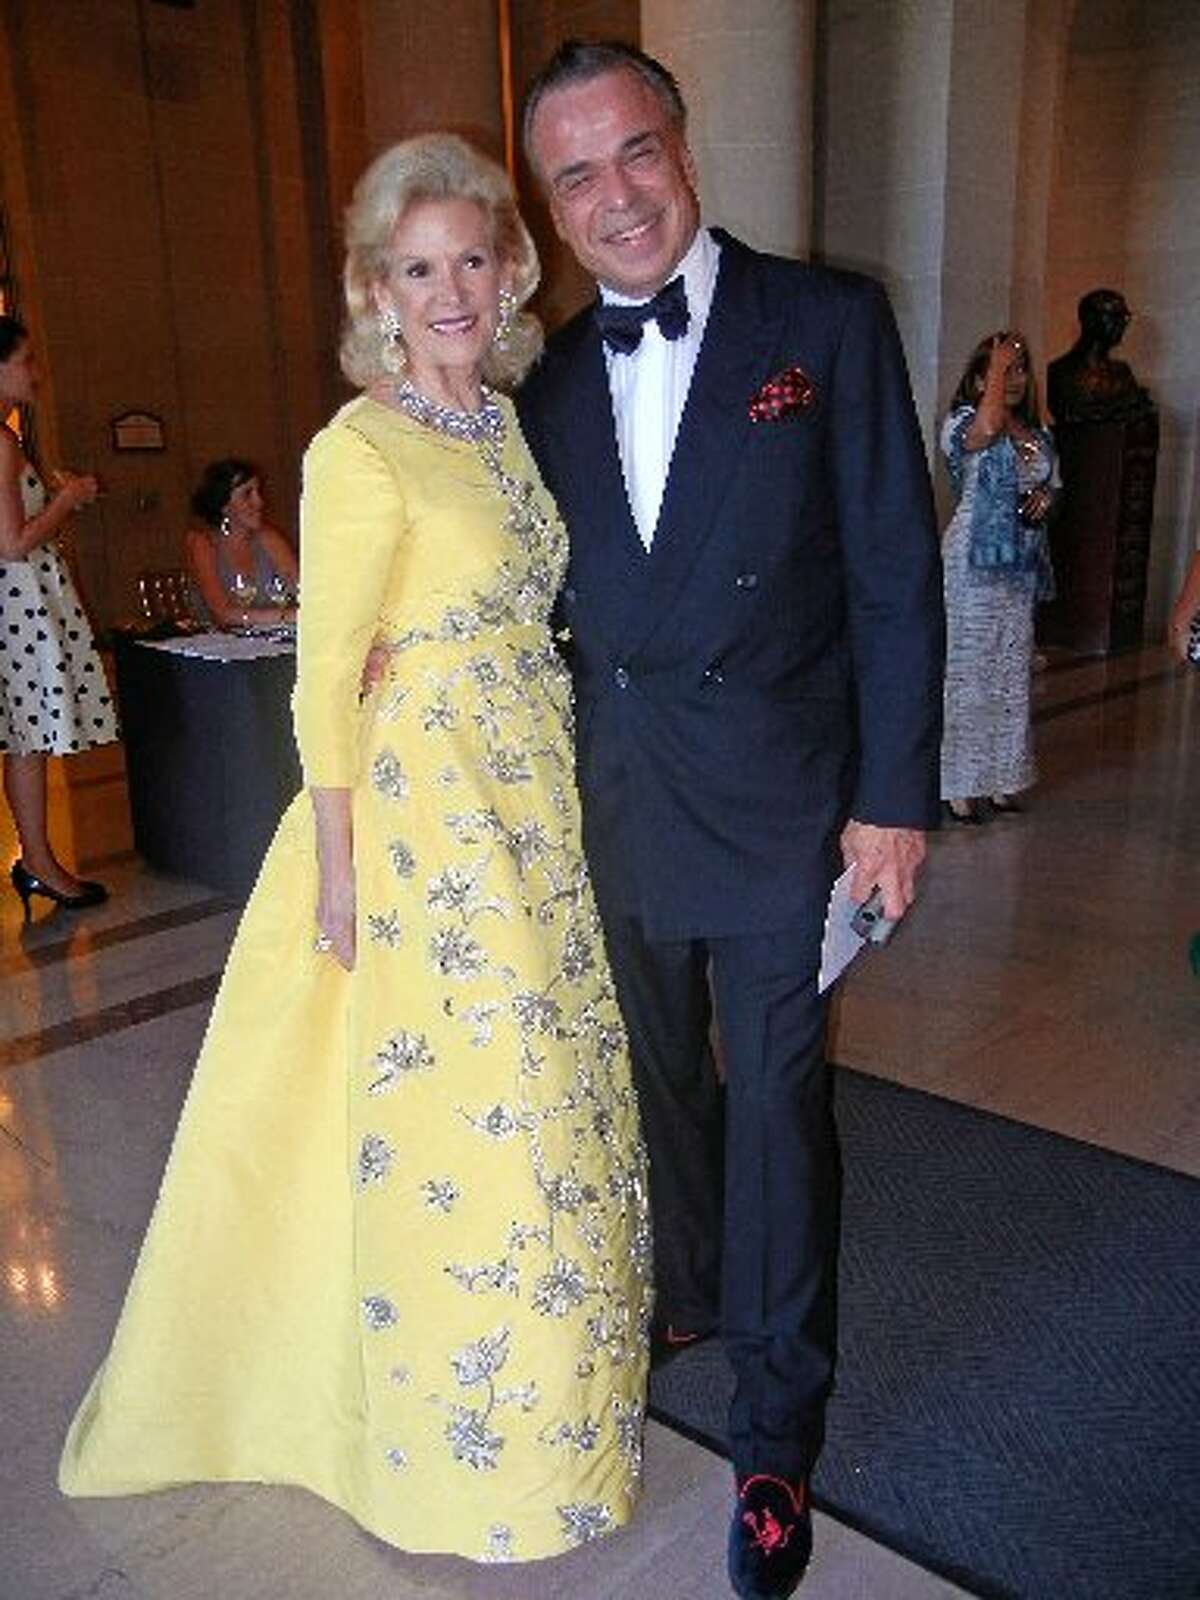 Dede Wilsey (in Oscar) and Boaz Mazor at Opera opening, 2013